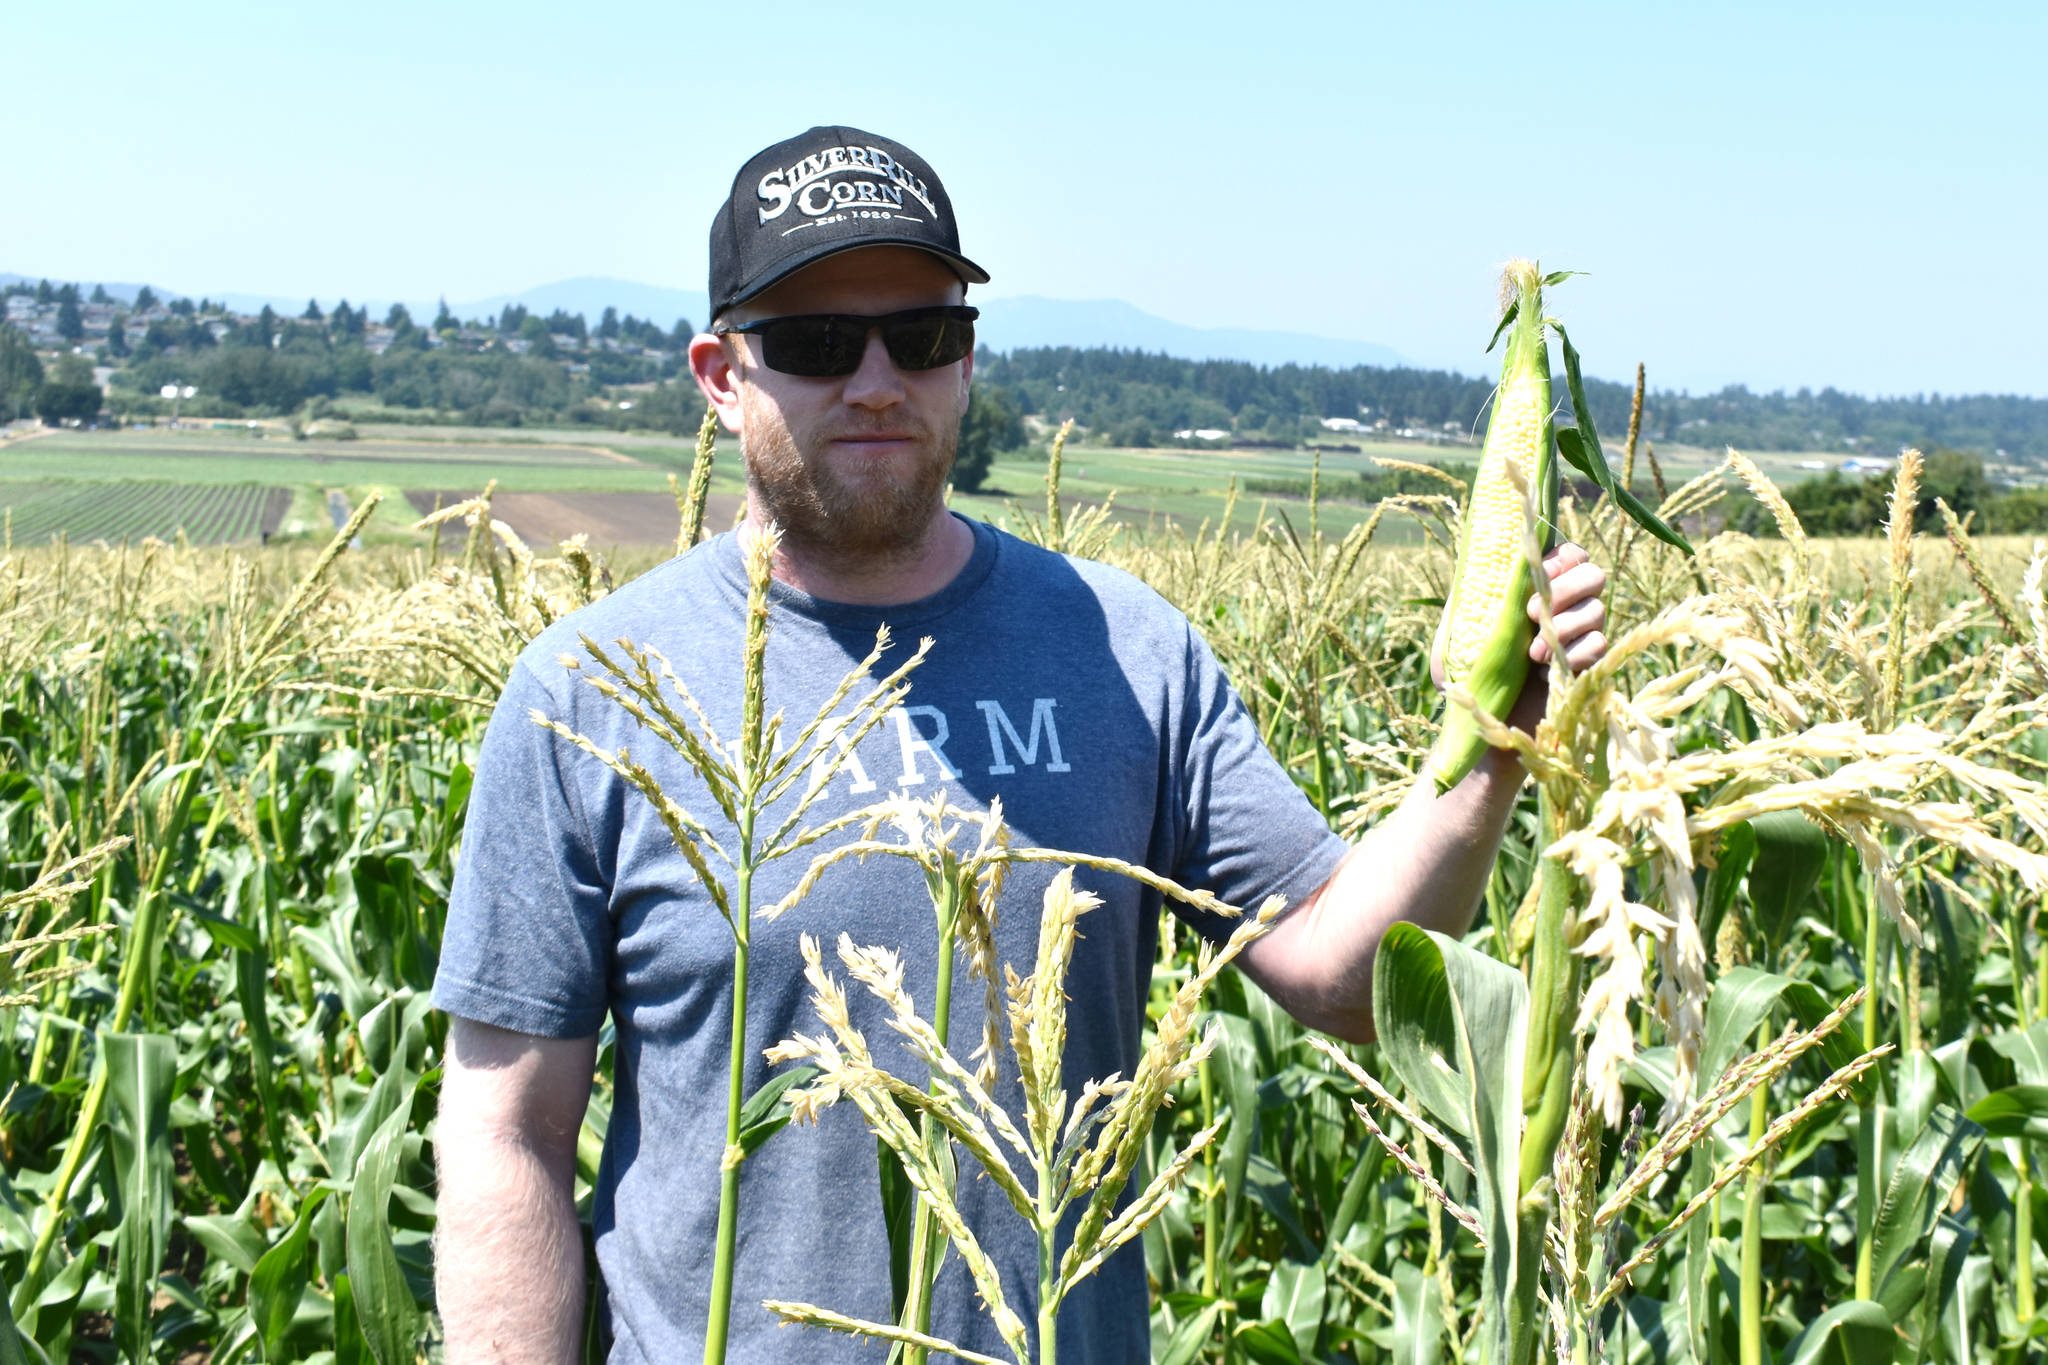 Clayton Fox of Silver Rill Corn outside Victoria shows off a cob of corn. While the high temperatures have damaged the farm's berry patch, it has helped its corn. (Wolf Depner/News Staff)